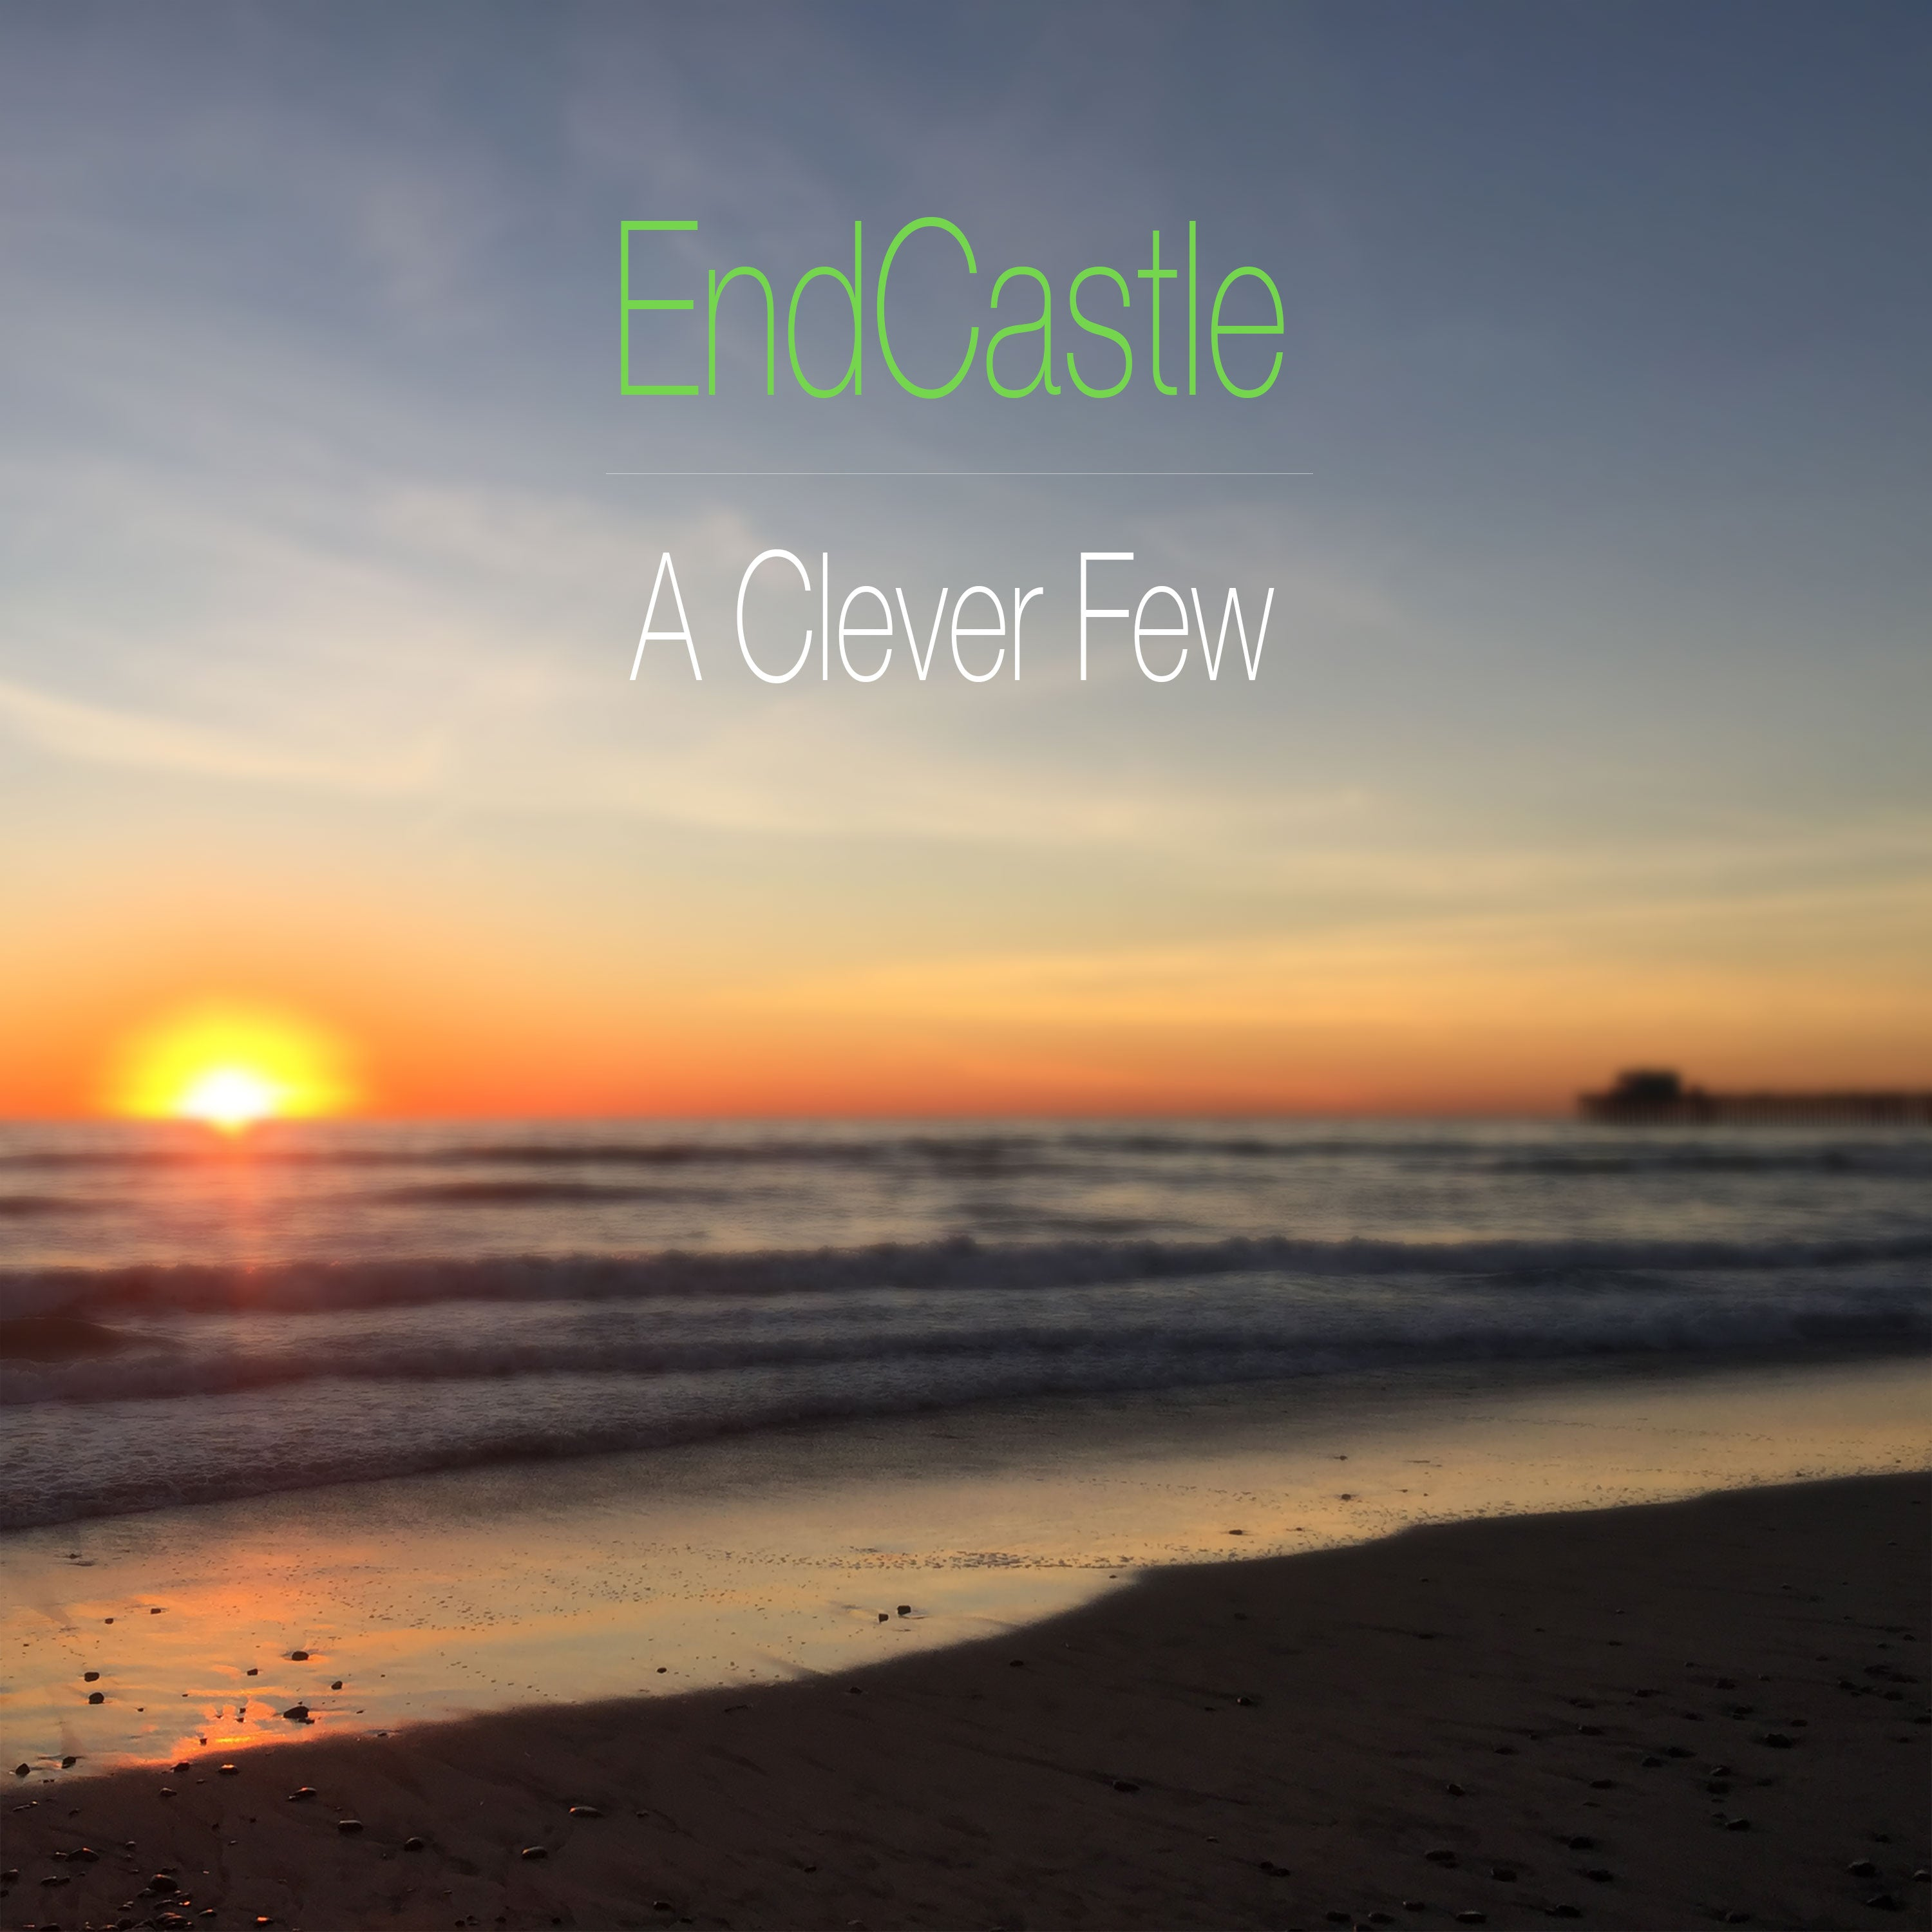 EndCastle - A Clever Few